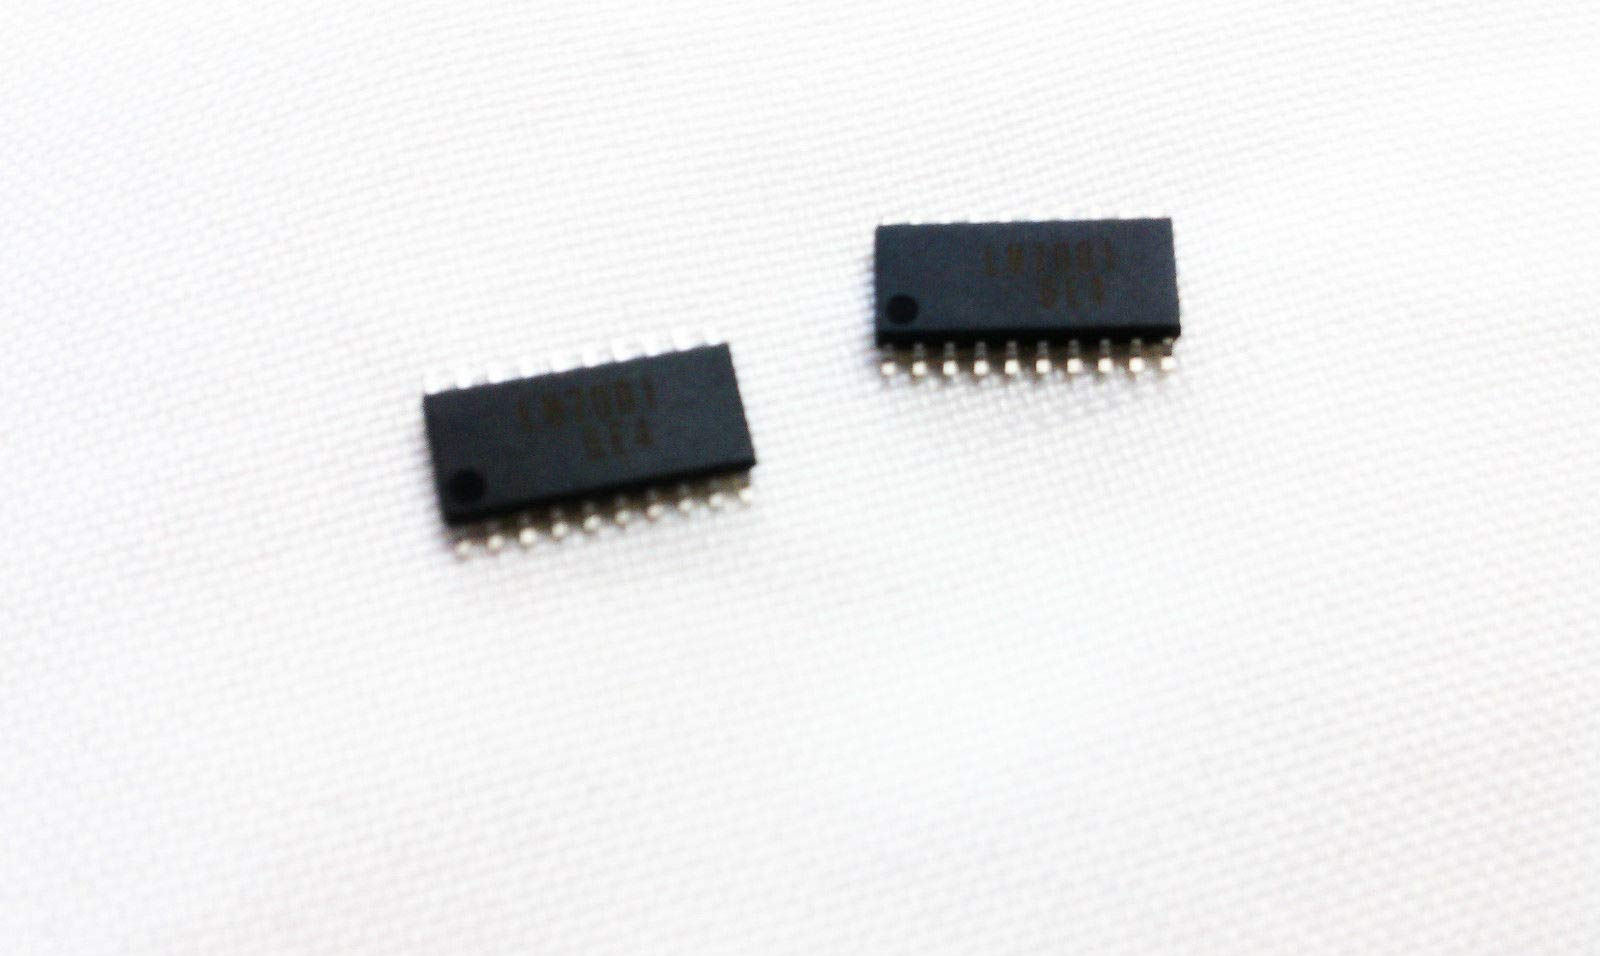 LM7001 (2 Pieces) - SMD SMT Frequency Synthesizer by Generic